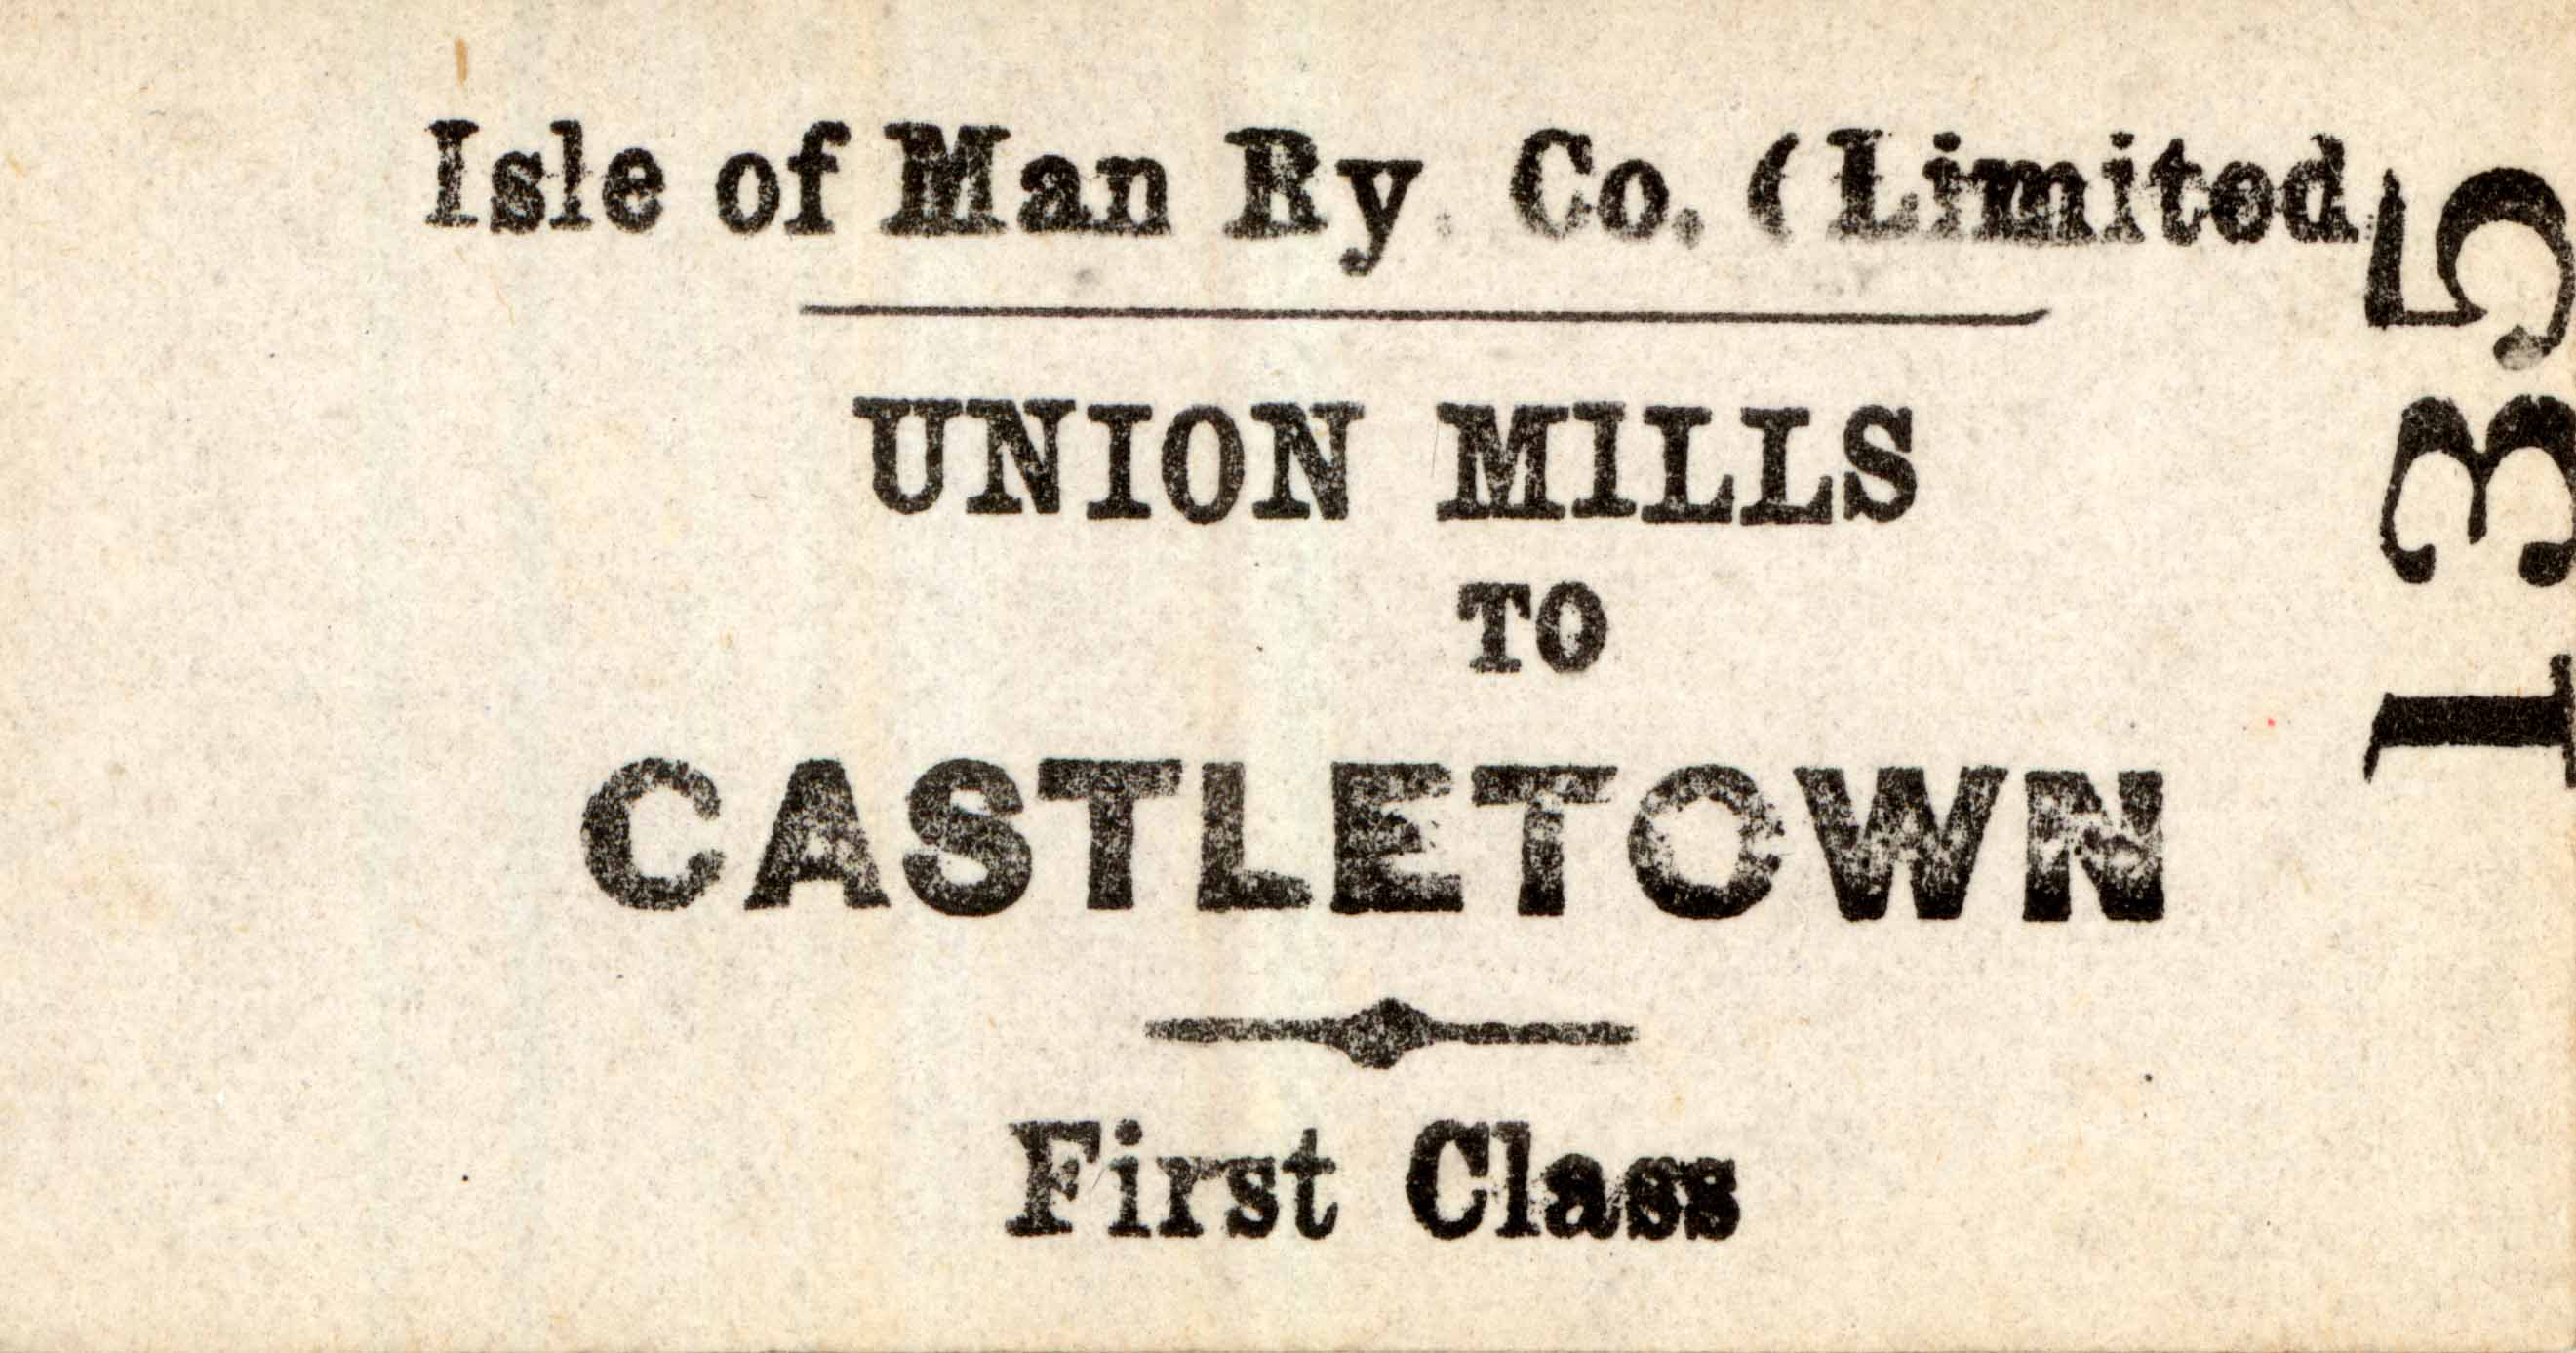 union mills asian single men The founding convention of the afl-cio's asian pacific not to renew the union contract frick turns mills into fort frick, hires all known union men were.